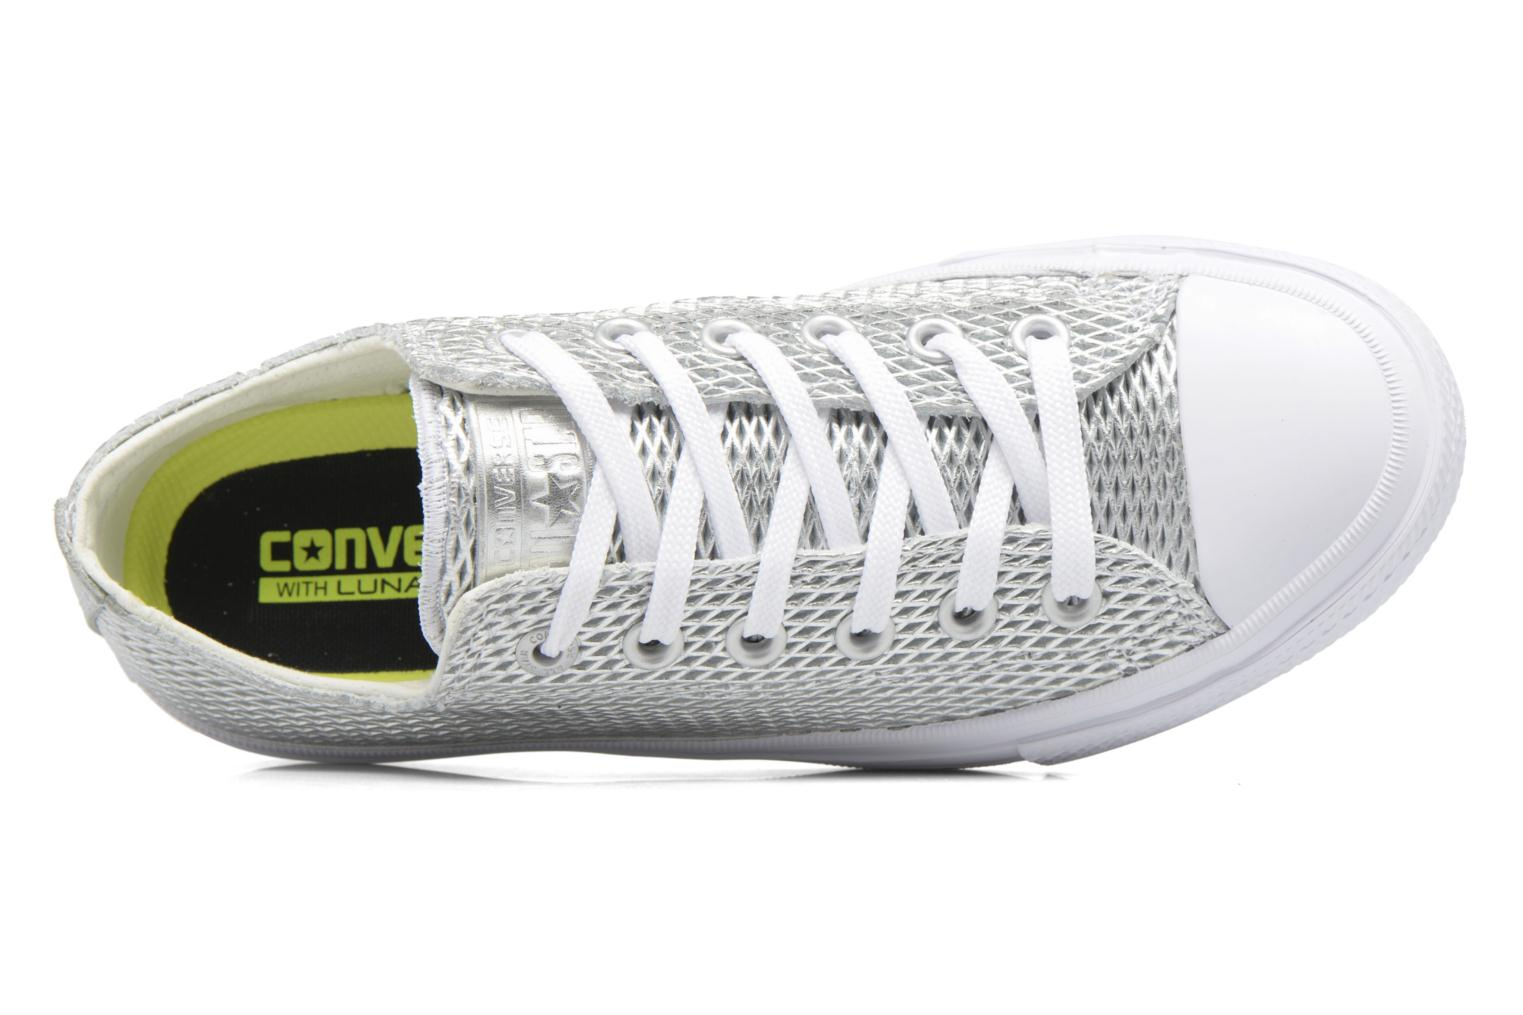 Deportivas Converse Chuck Taylor All Star II Ox Perf Metallic Leather Plateado vista lateral izquierda